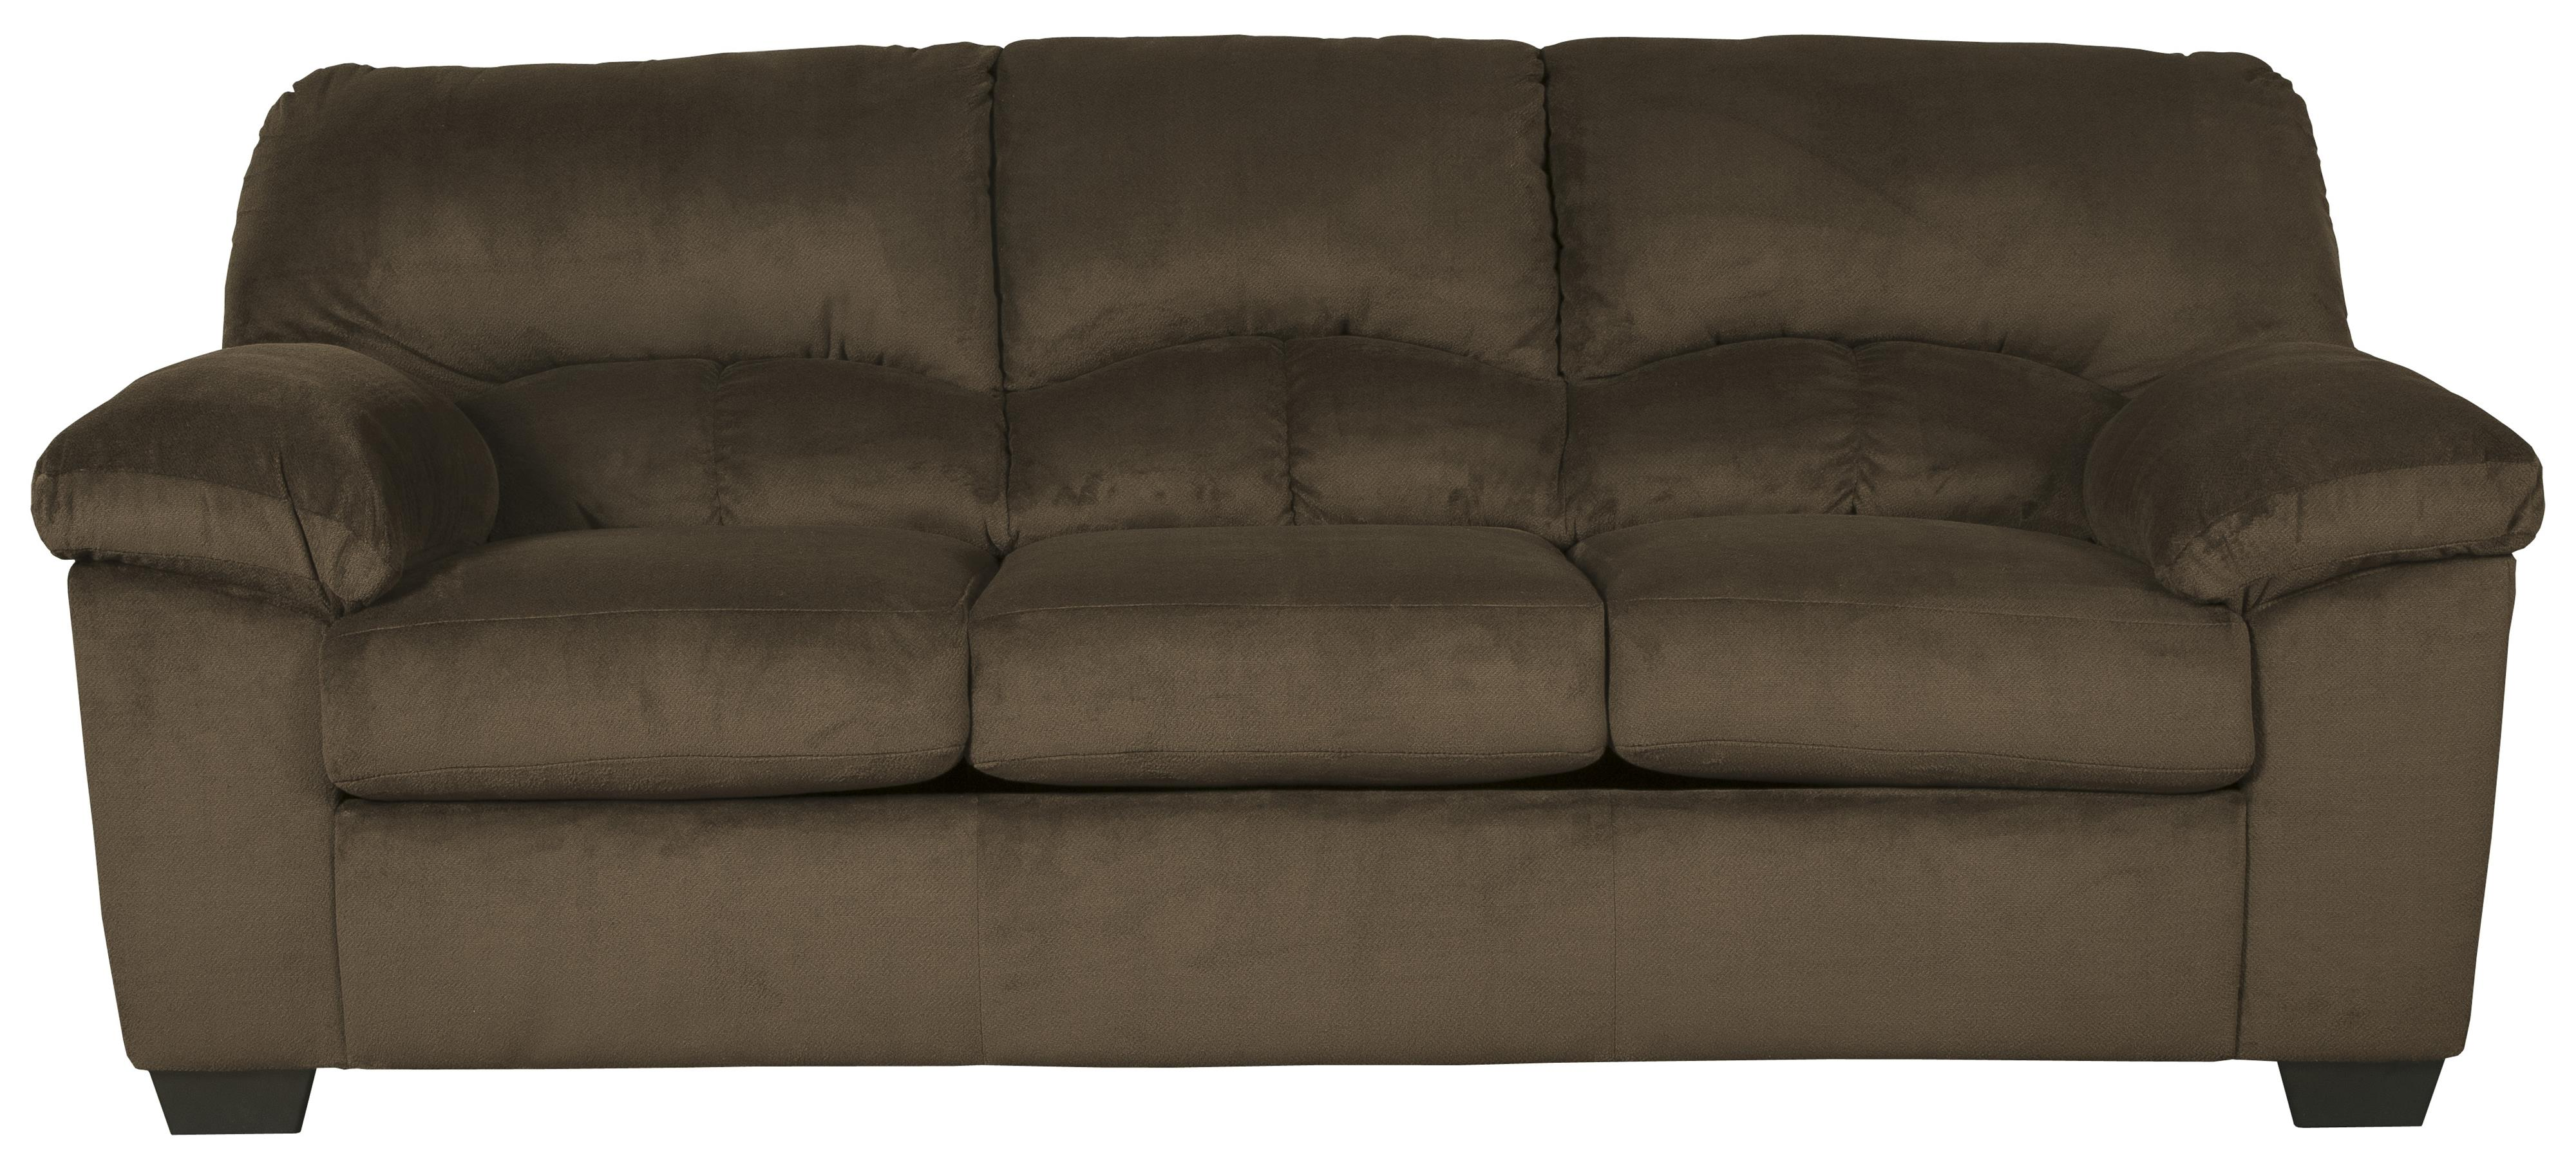 Signature Design by Ashley Dailey Full Sofa Sleeper - Item Number: 9540336